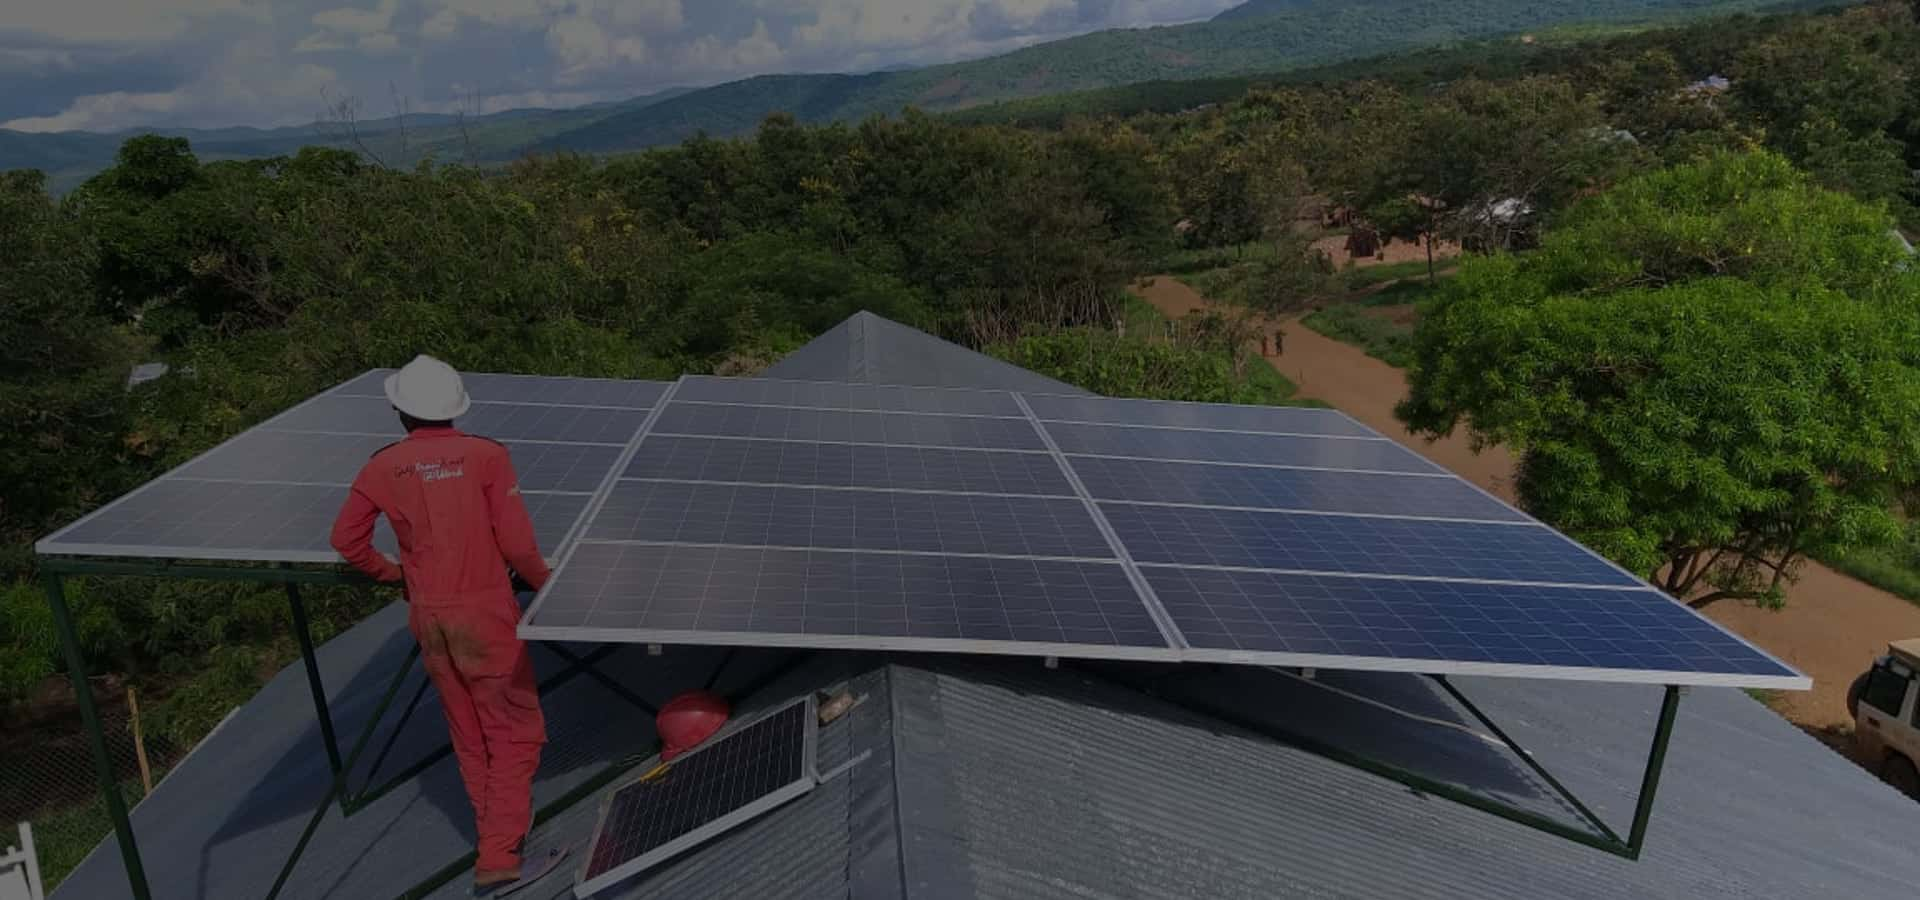 Solar panels installed at Rukoma Dispensary